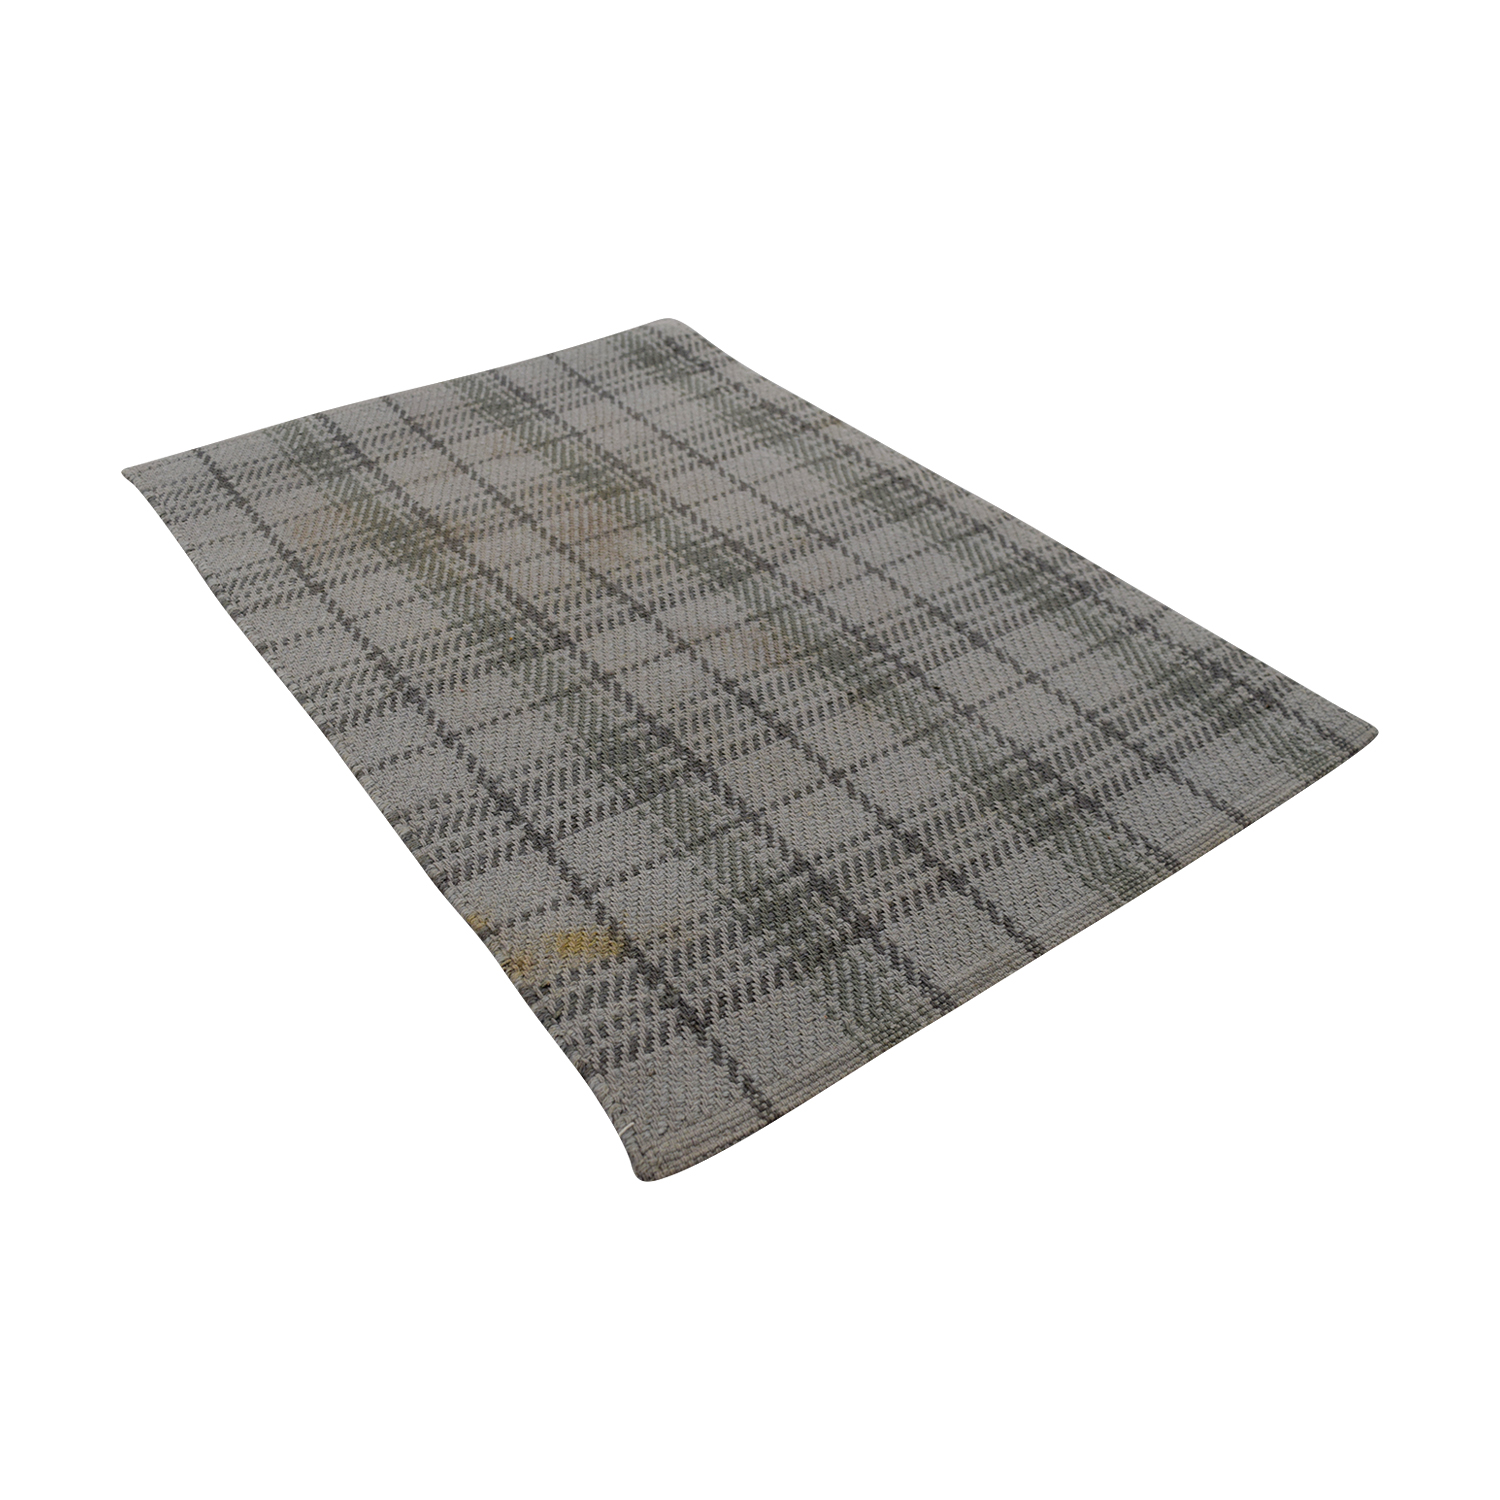 Obeetee Obeetee Grey Plaid Rug coupon